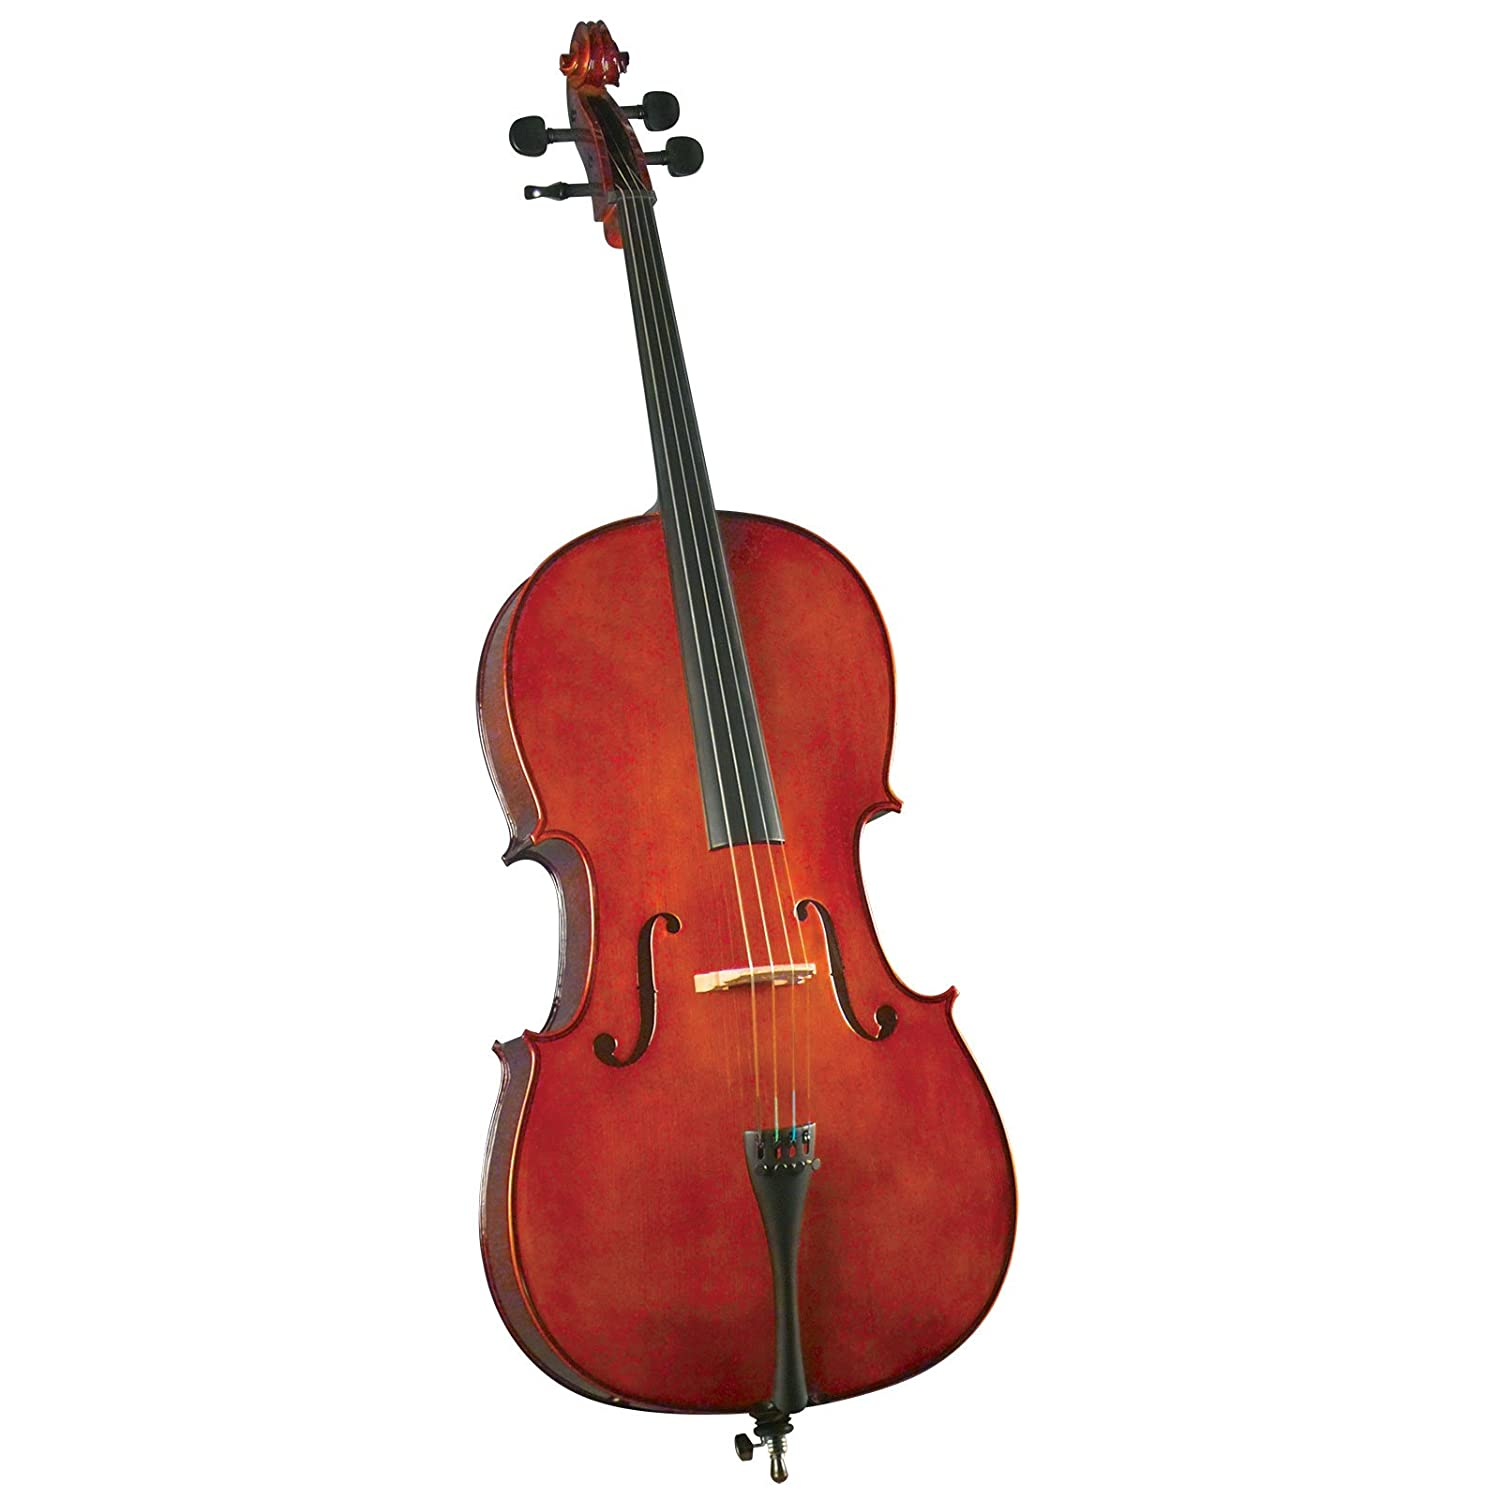 Cervini Cello-Acoustic, Size (HC-100 1/2)